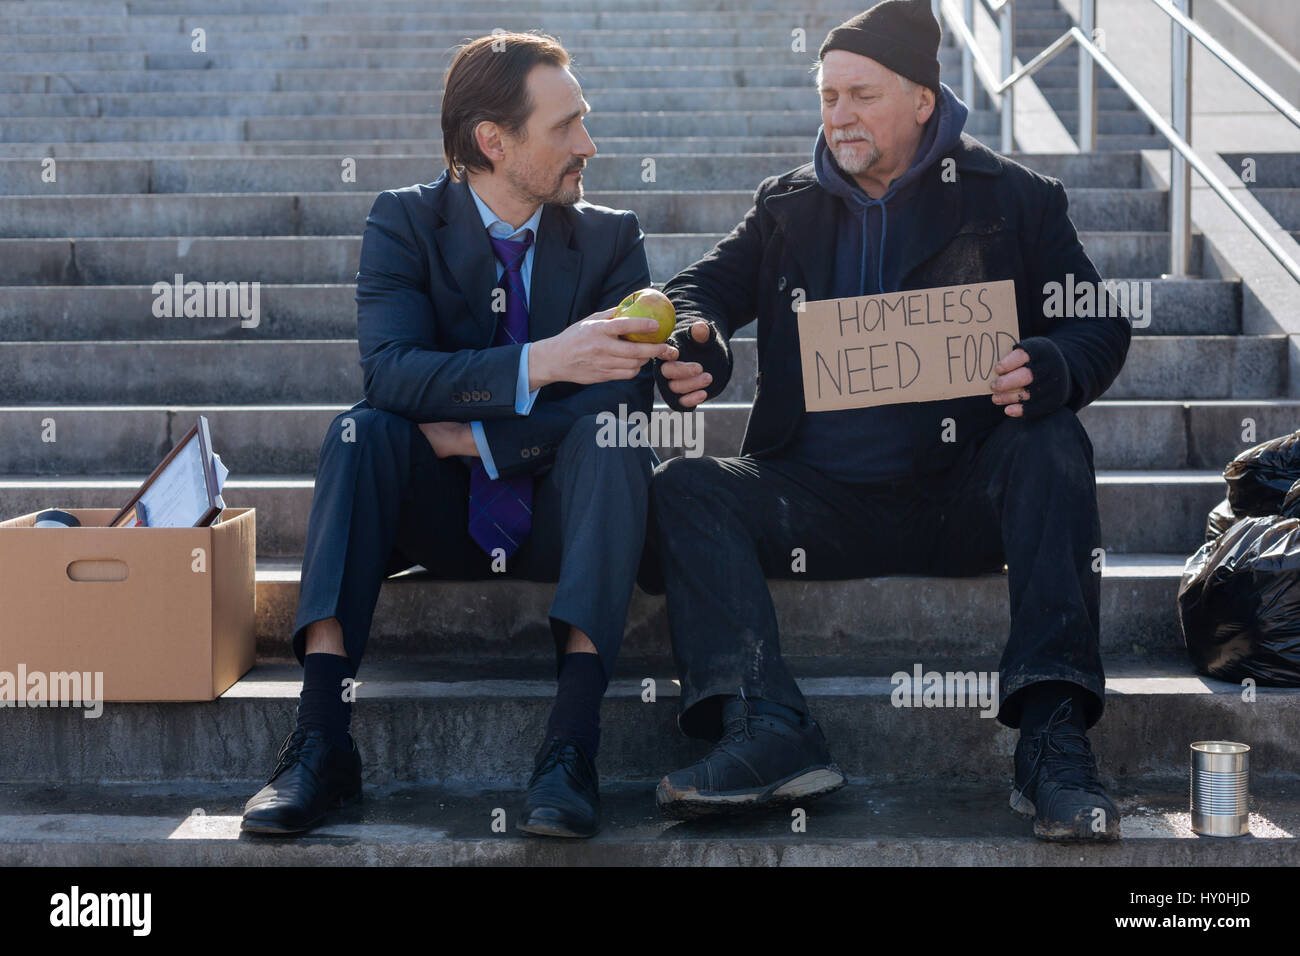 Jobless and homeless sitting next to each other - Stock Image